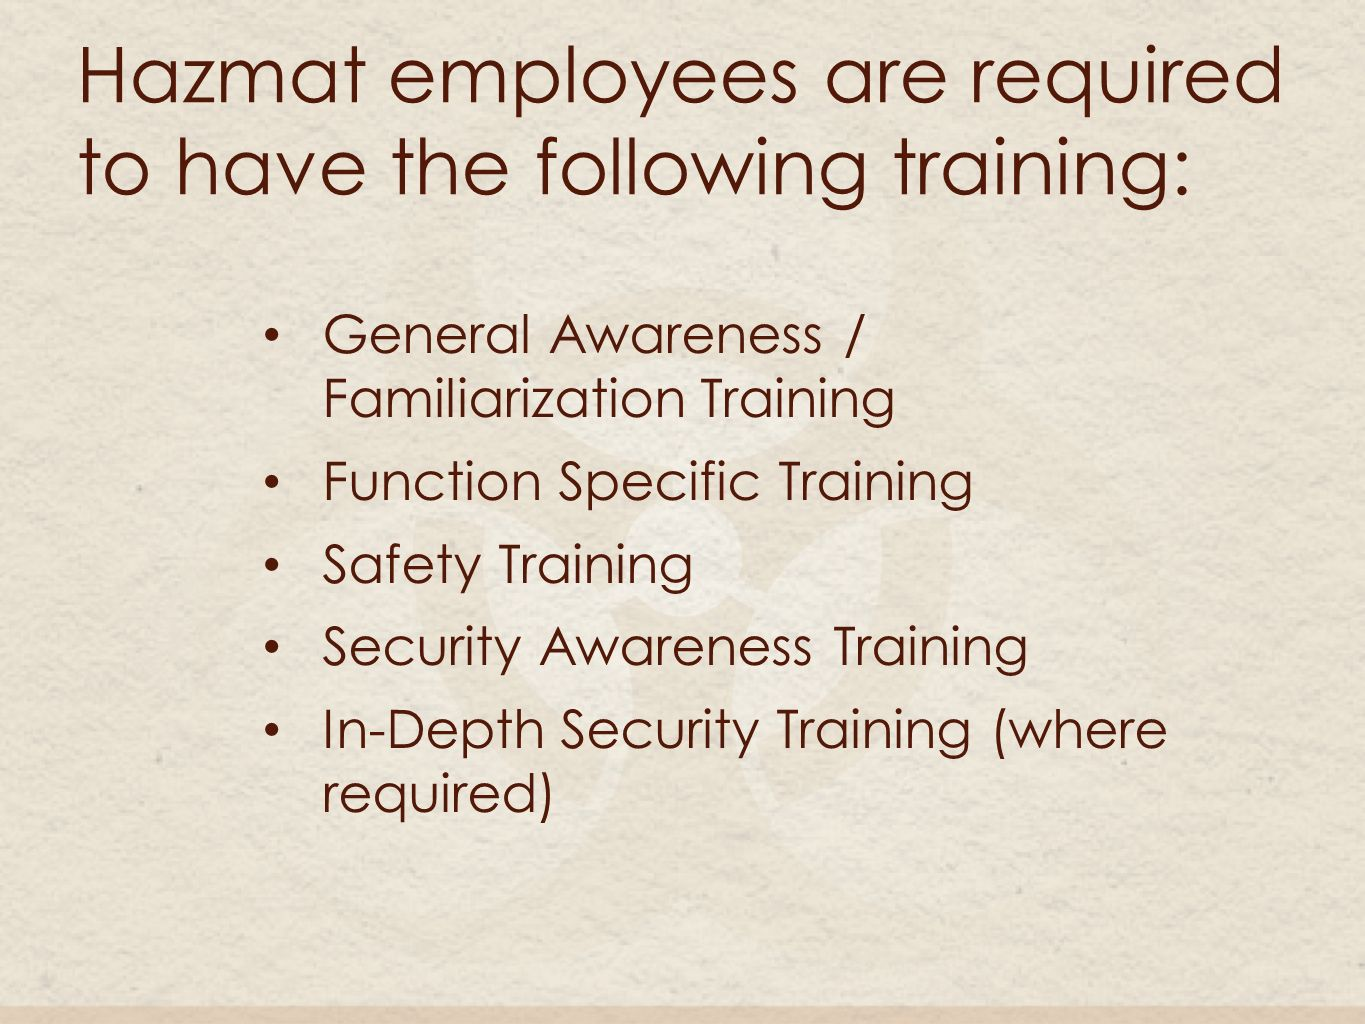 General Awareness And Familiarization Training  Ppt Video. Comcast Home Security Houston. Help Desk Support Ticket System. Above It All Treatment Center. Irs Identity Theft Number Shrew Vpn Software. Auto Insurance Ft Lauderdale Smiles 4 Kids. Cloud Security Best Practices. Tensabarrier Belt Barrier Cable Hagerstown Md. How Long Do Drugs Stay In Hair